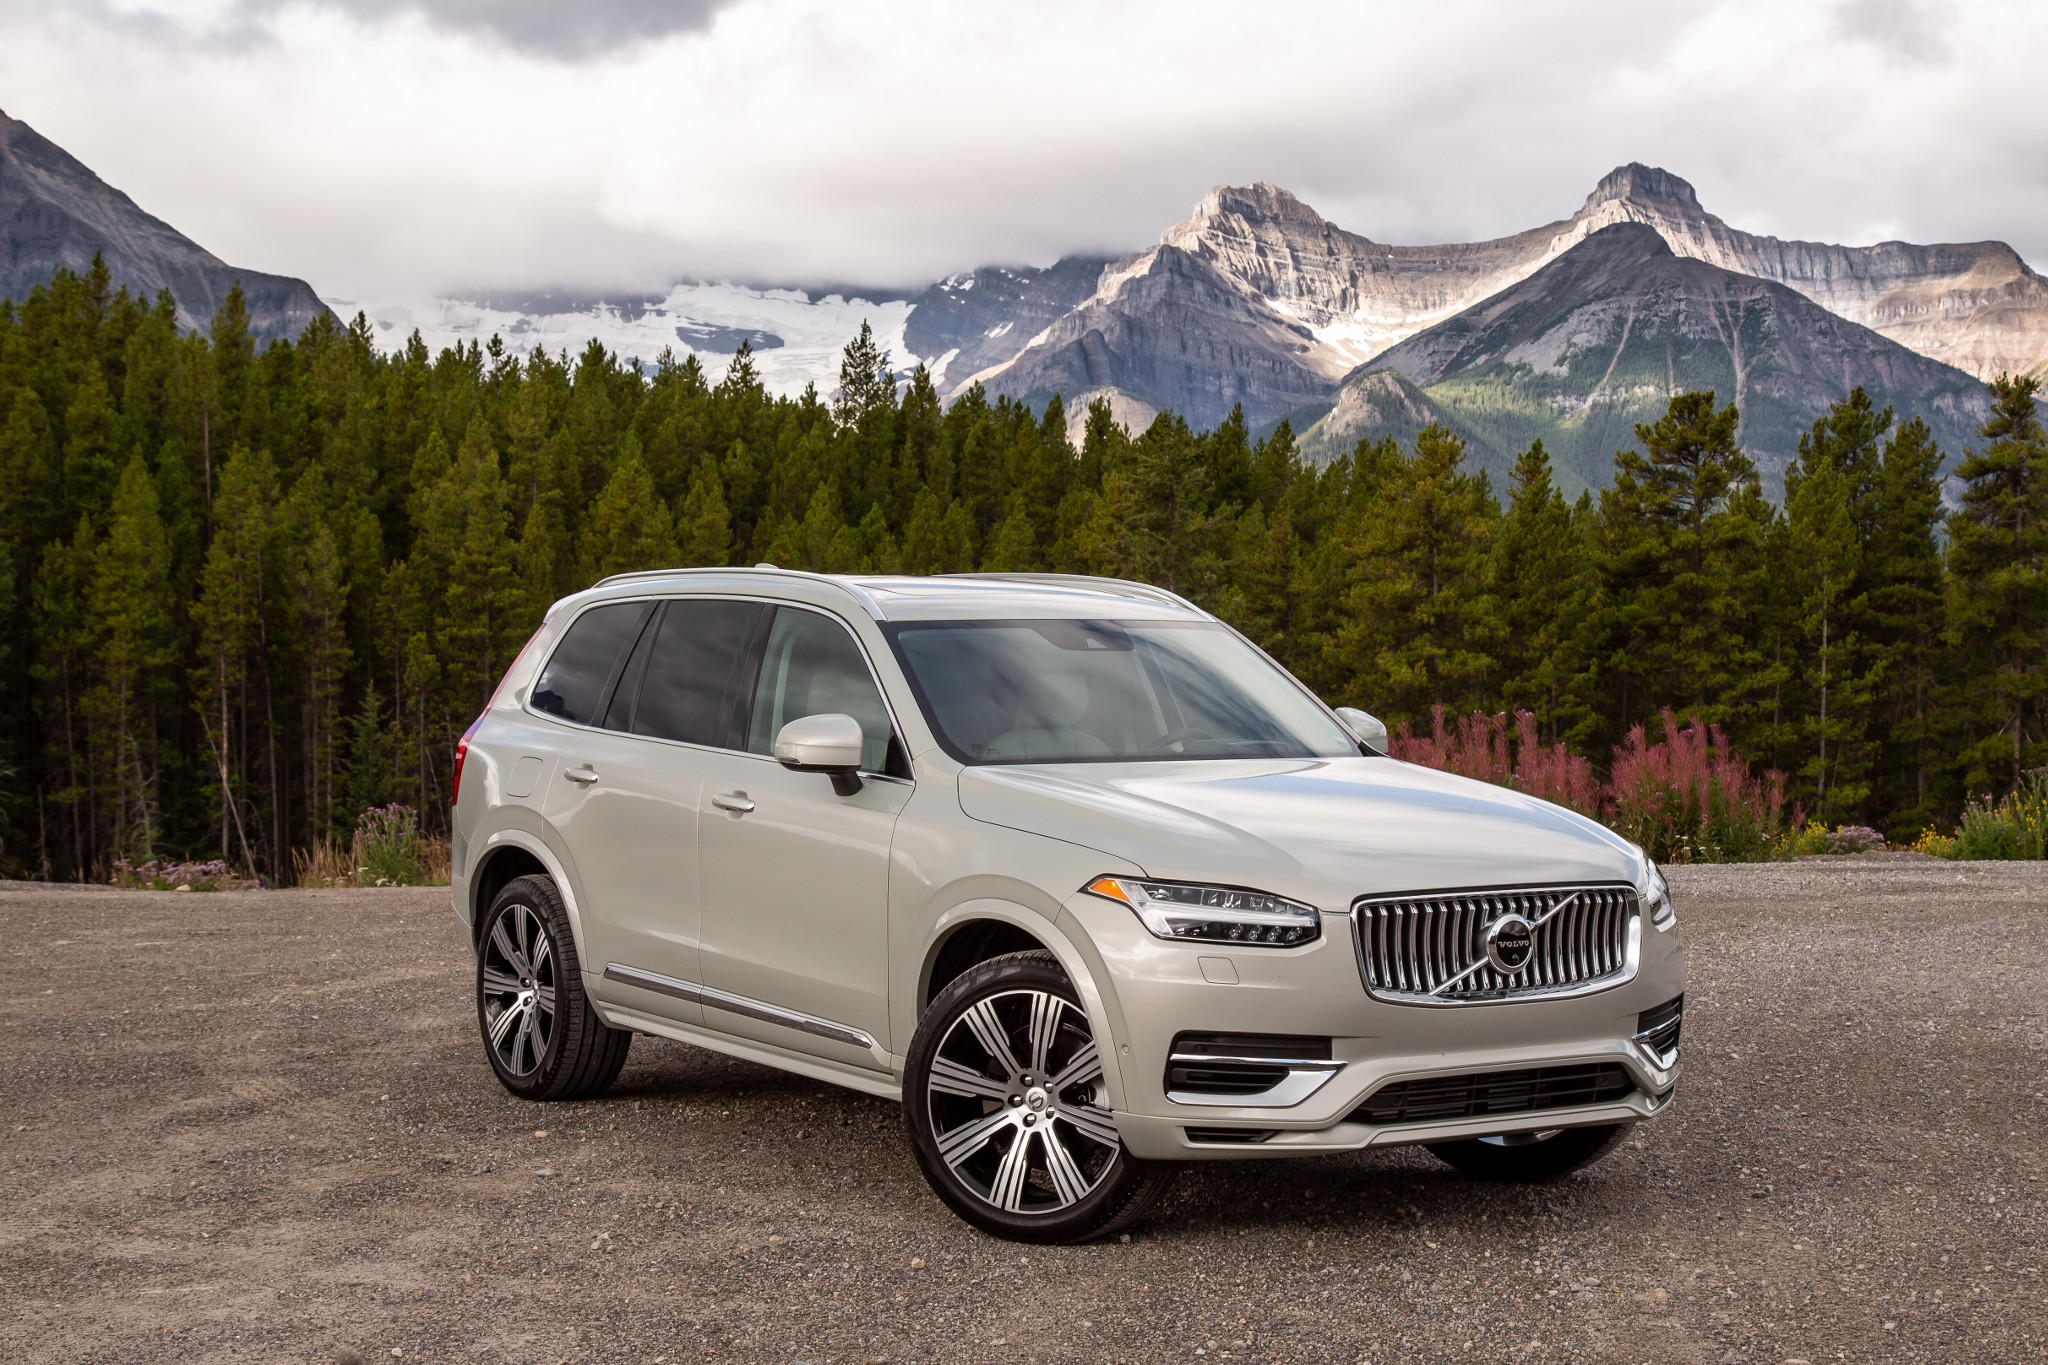 volvo-xc90-t8-inscription-2020-01-angle--exterior--front--mountains--trees--white.jpg